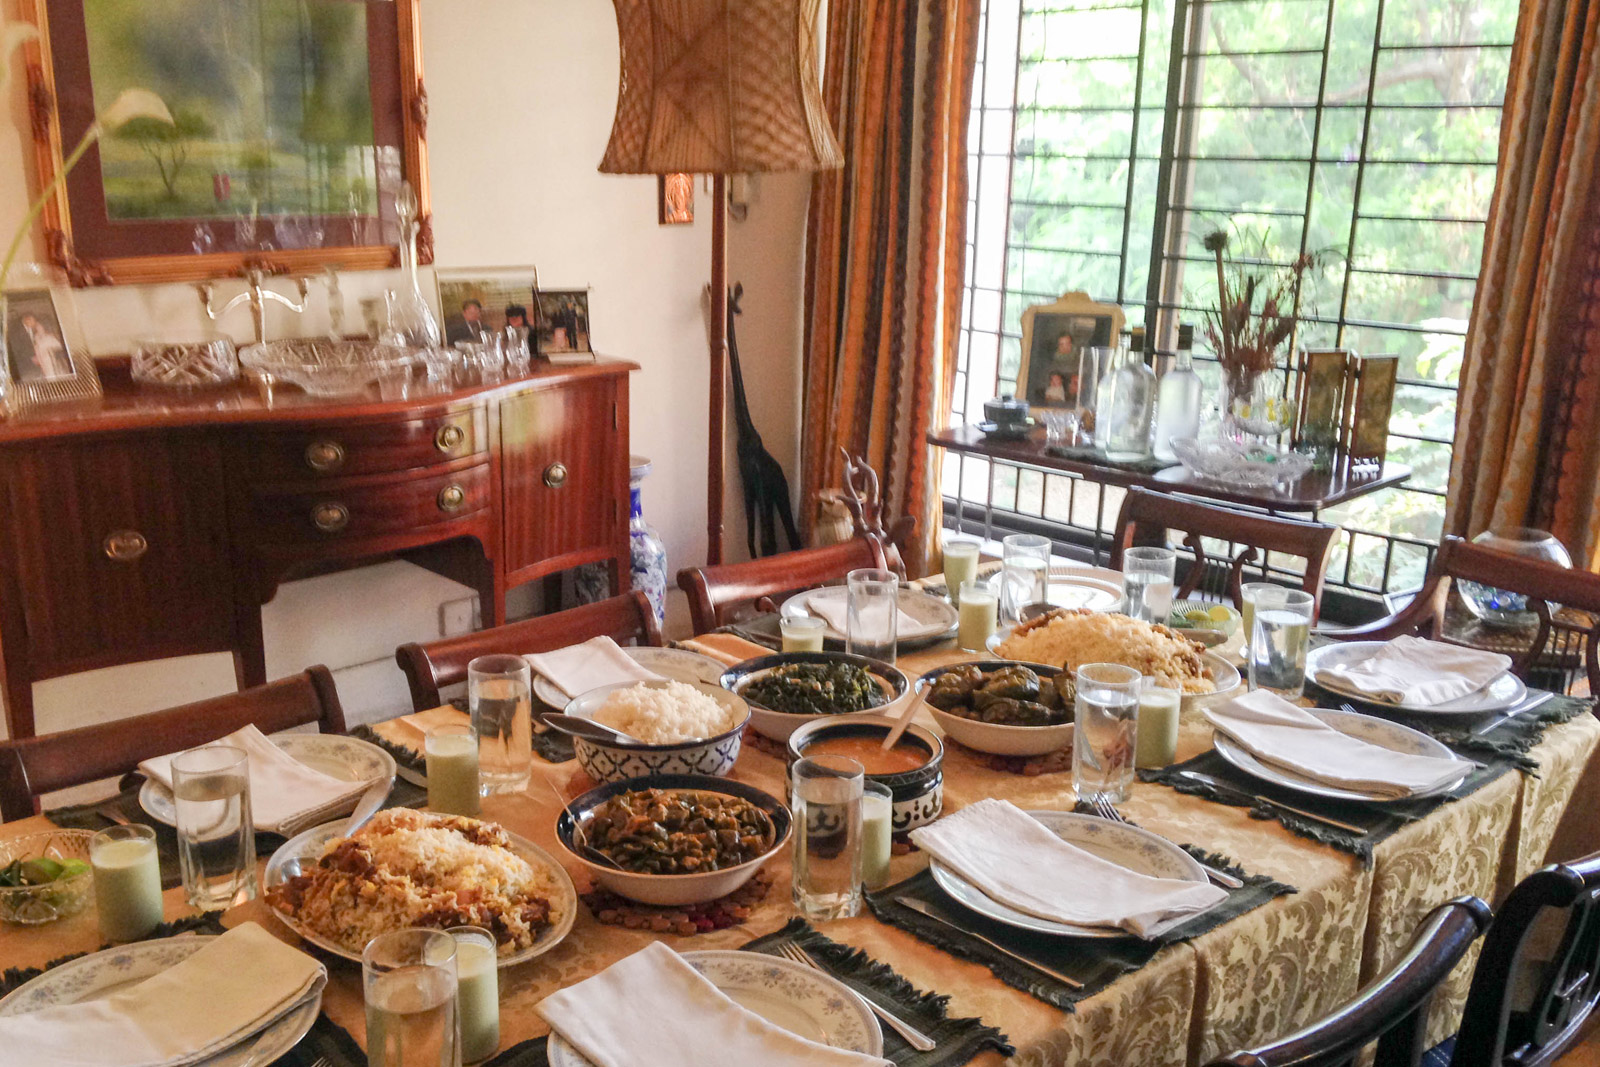 Our dining table laid out for lunch, when guests were joining us.